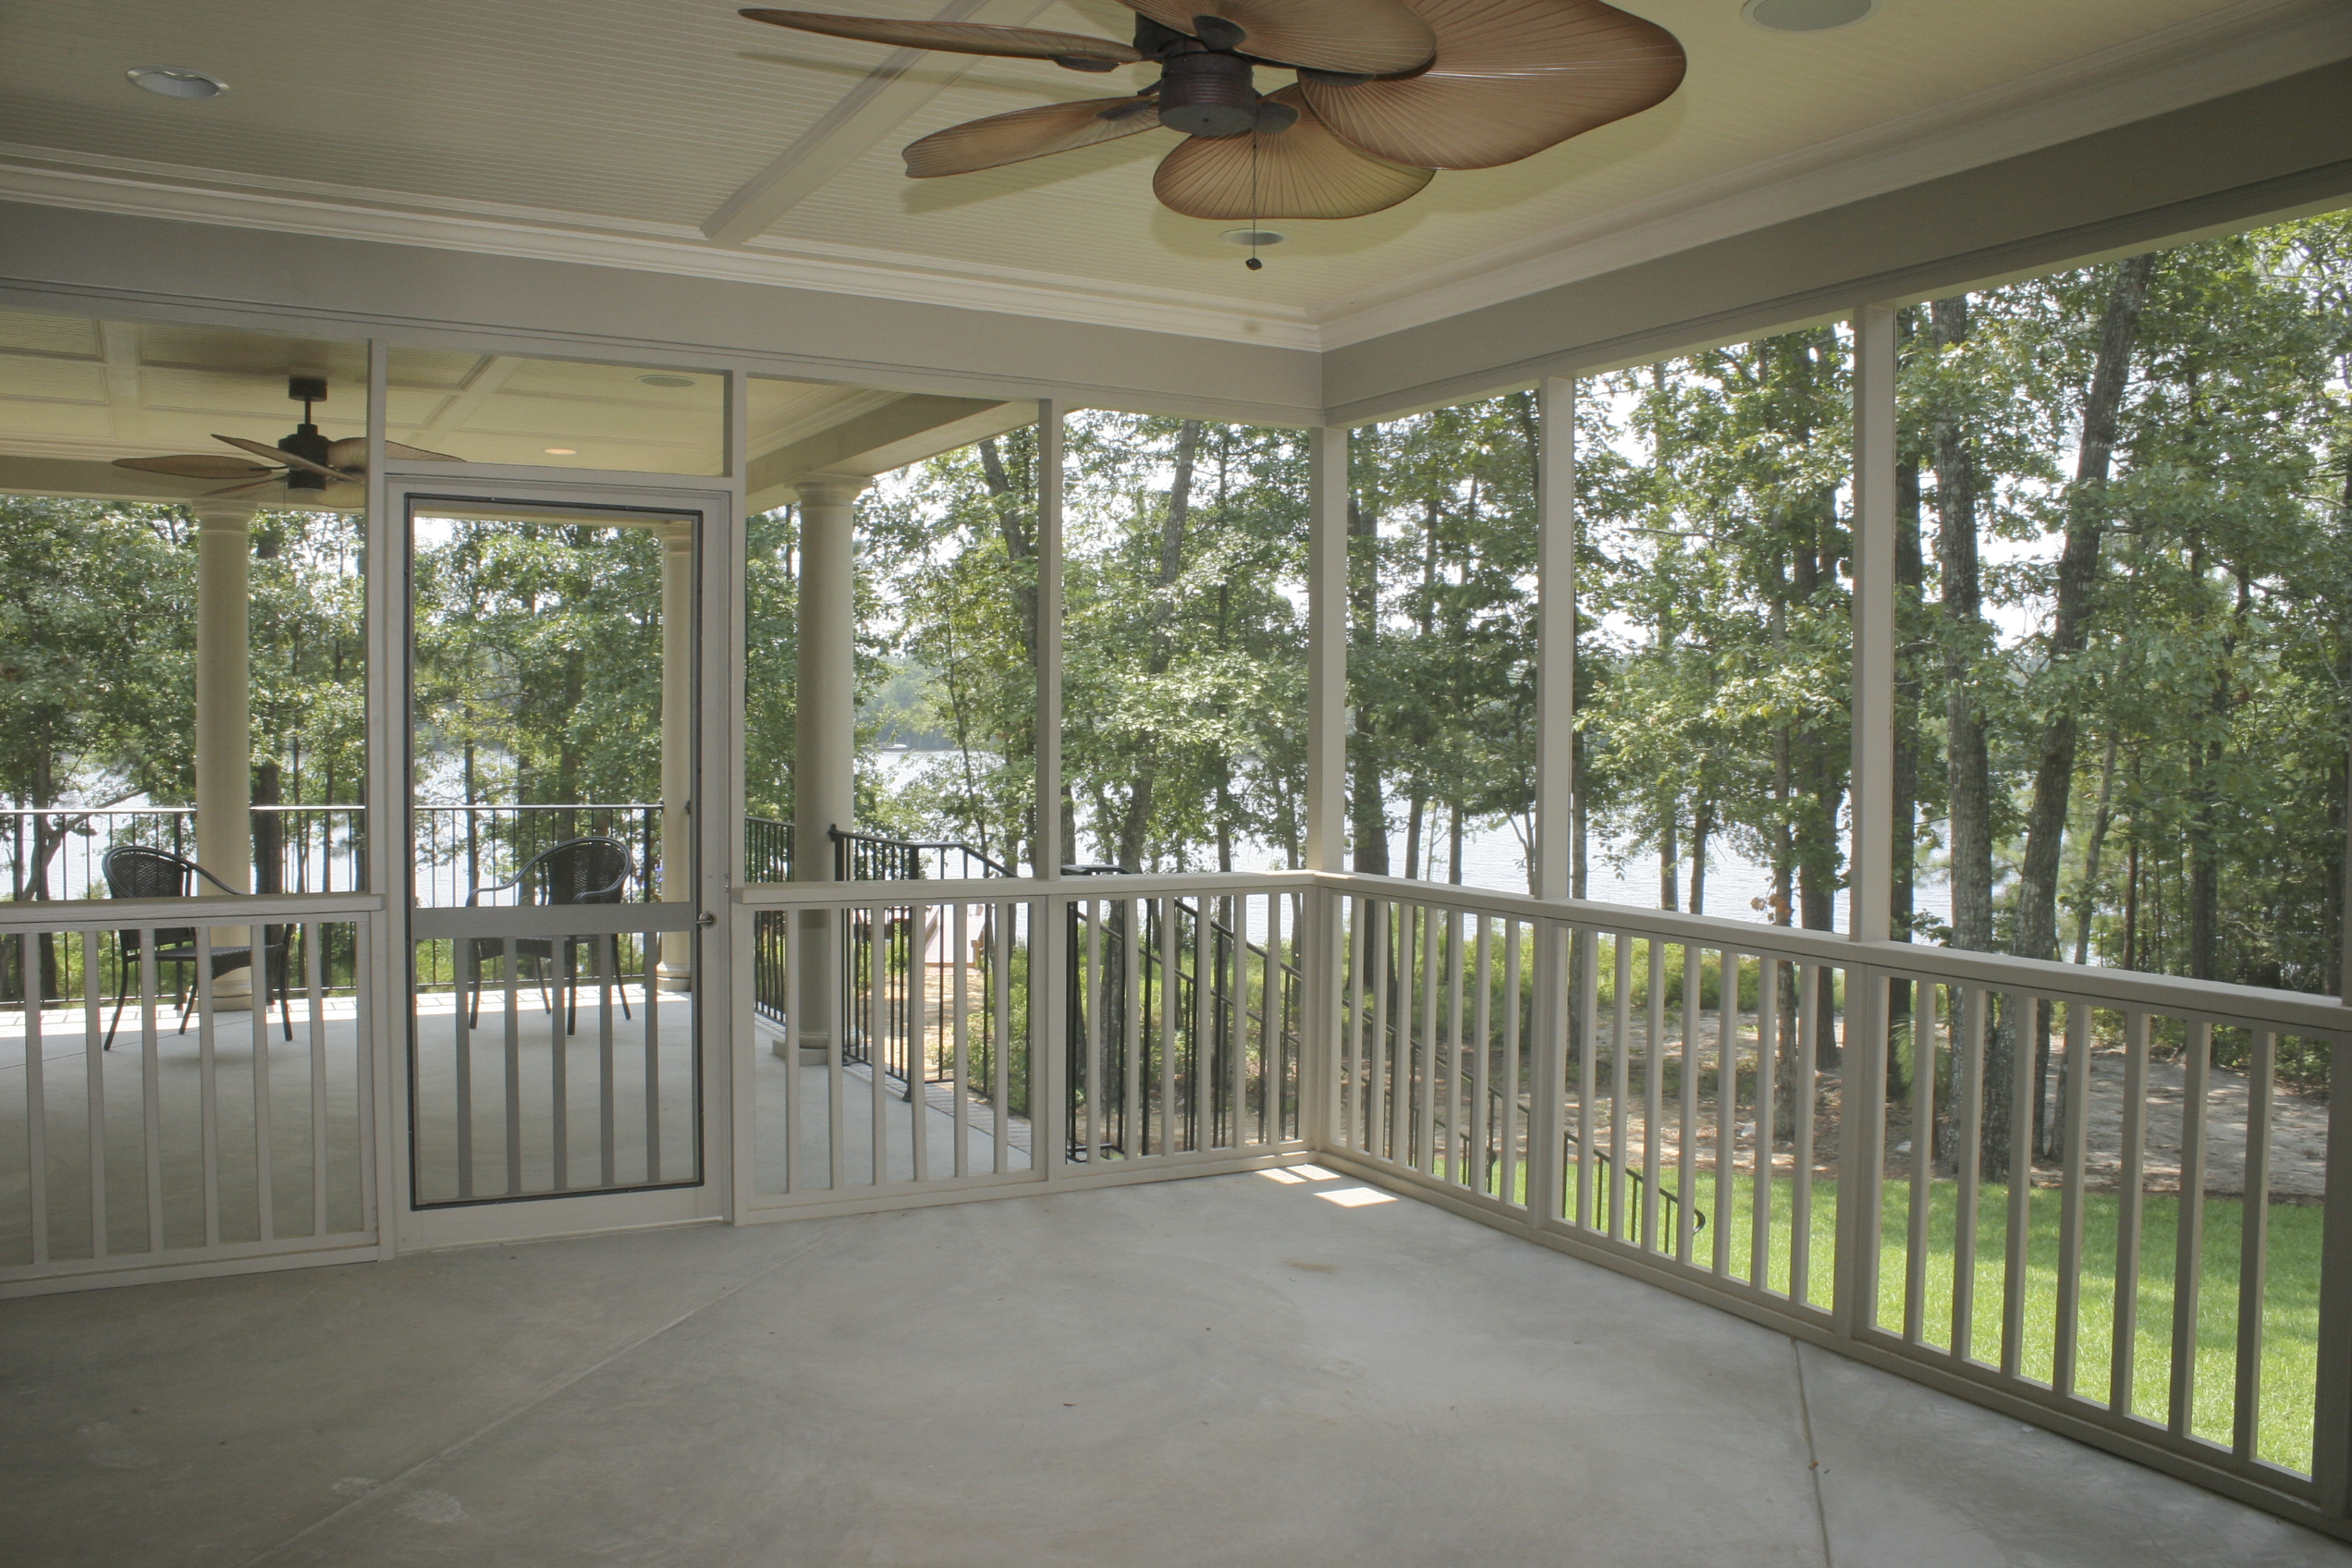 11-Screened-porch